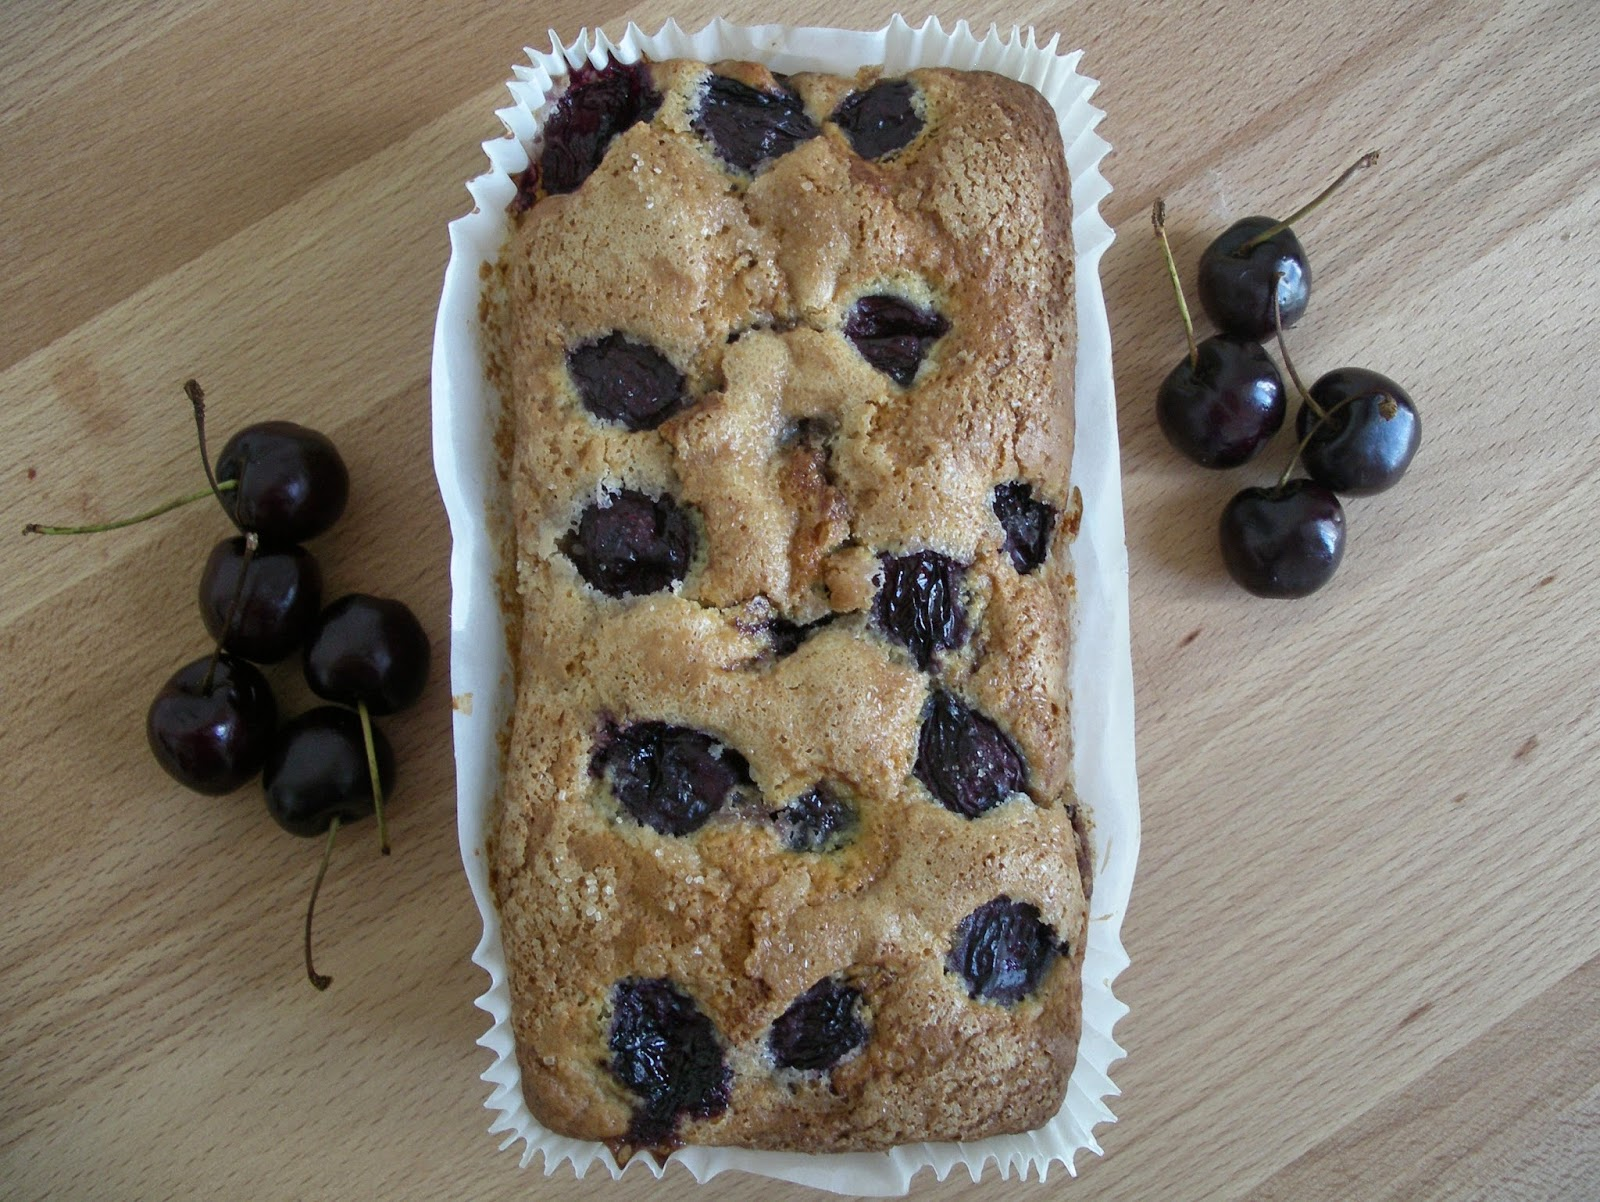 Cherry loaf cake with a lemon scent